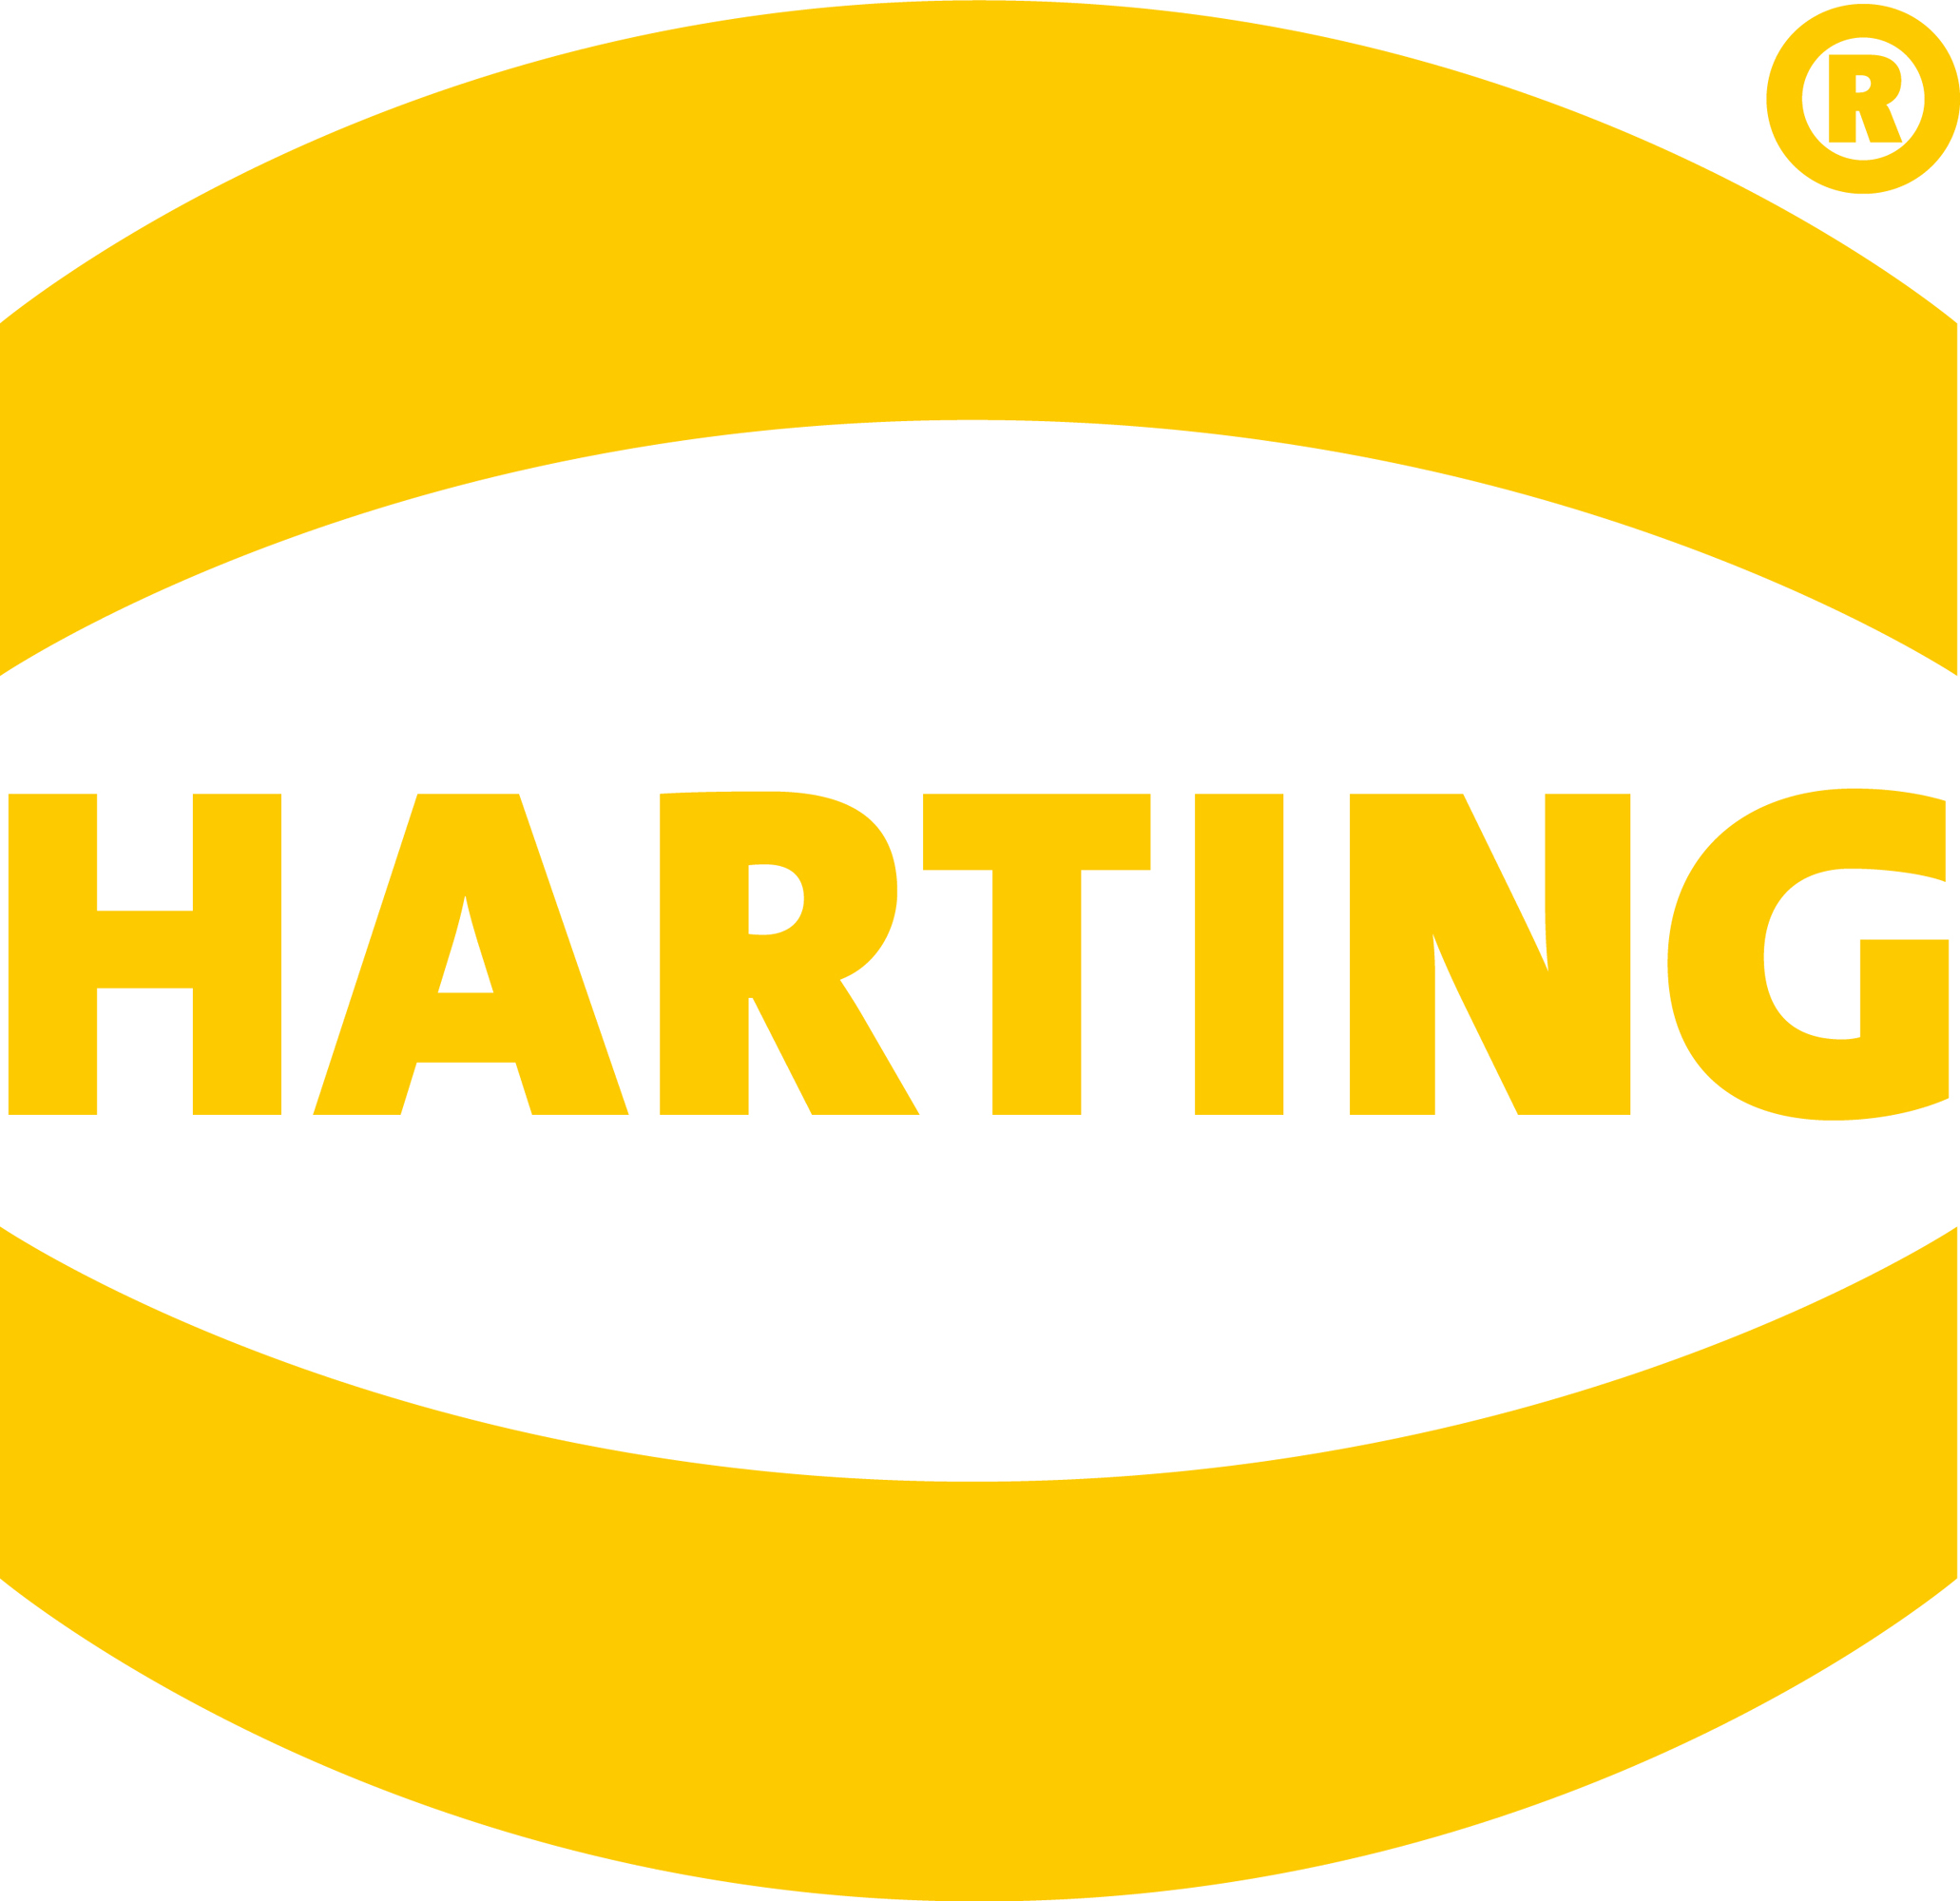 HARTING announces partnership with the PerFact Group